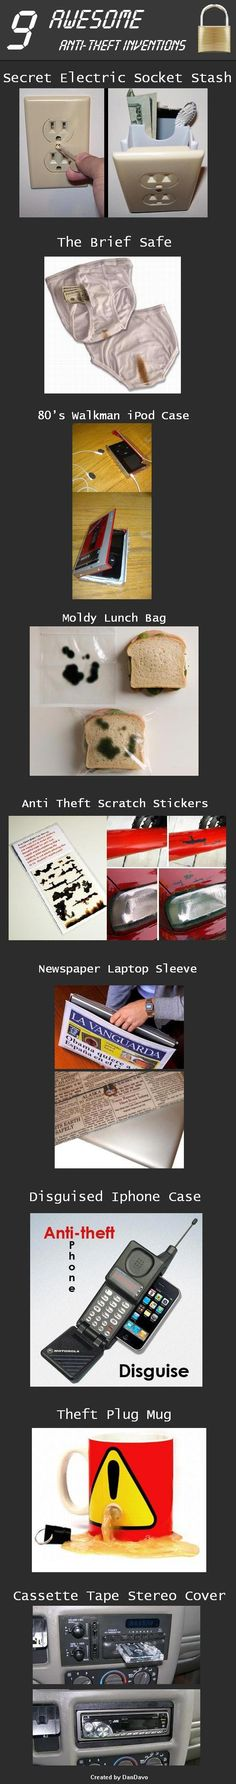 9 Awesomely Creative Anti Theft Inventions